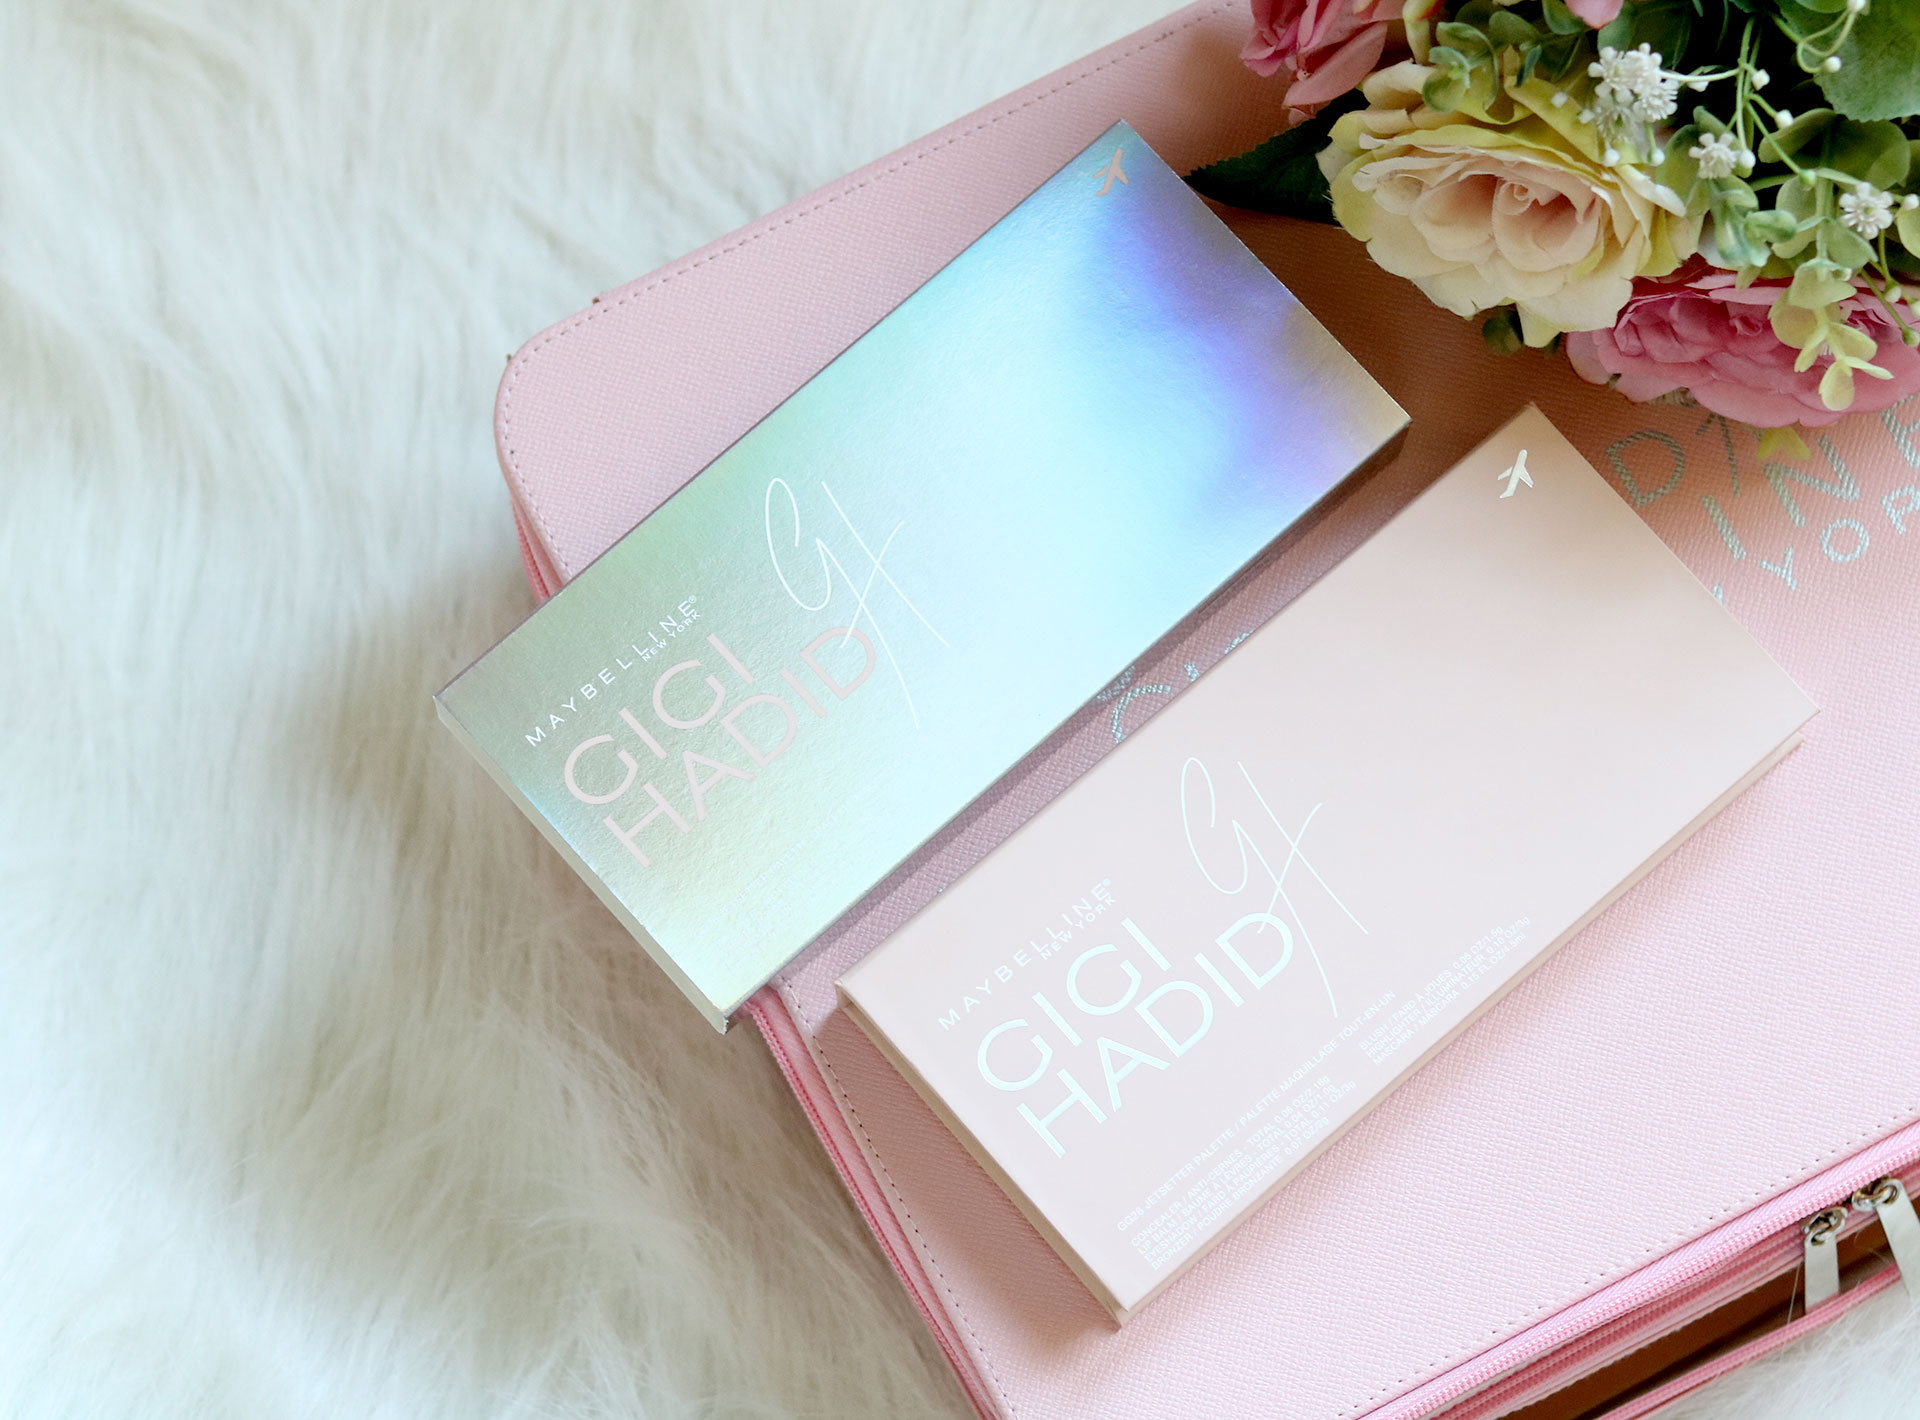 8 Gigi Hadid Maybelline Collection Review Swatches Photos Jetsetter Palette - Gen-zel She Sings Beauty